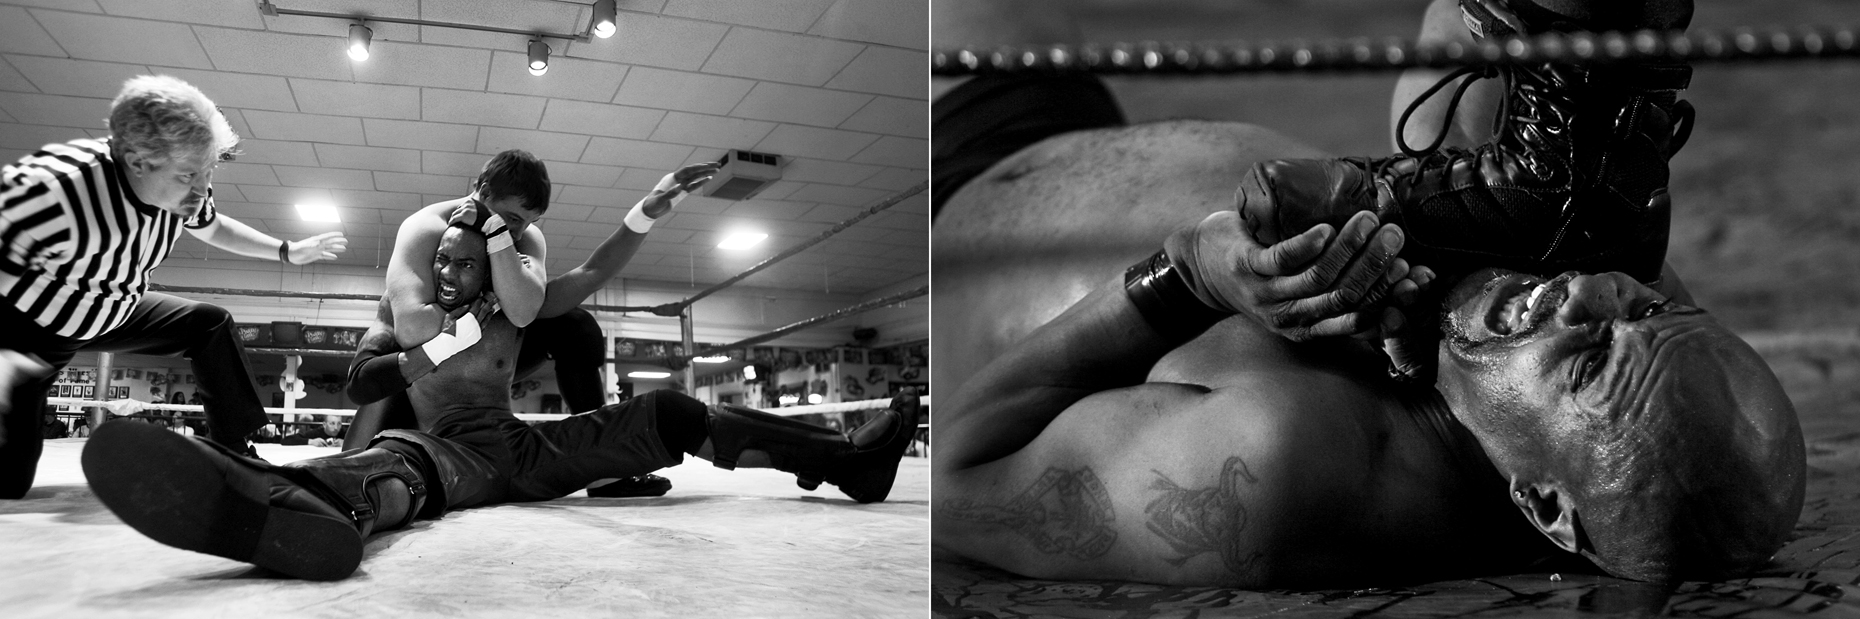 JOHNNY ANDREWS PHOTOGRAPHY : PROJECTS :: Ringside